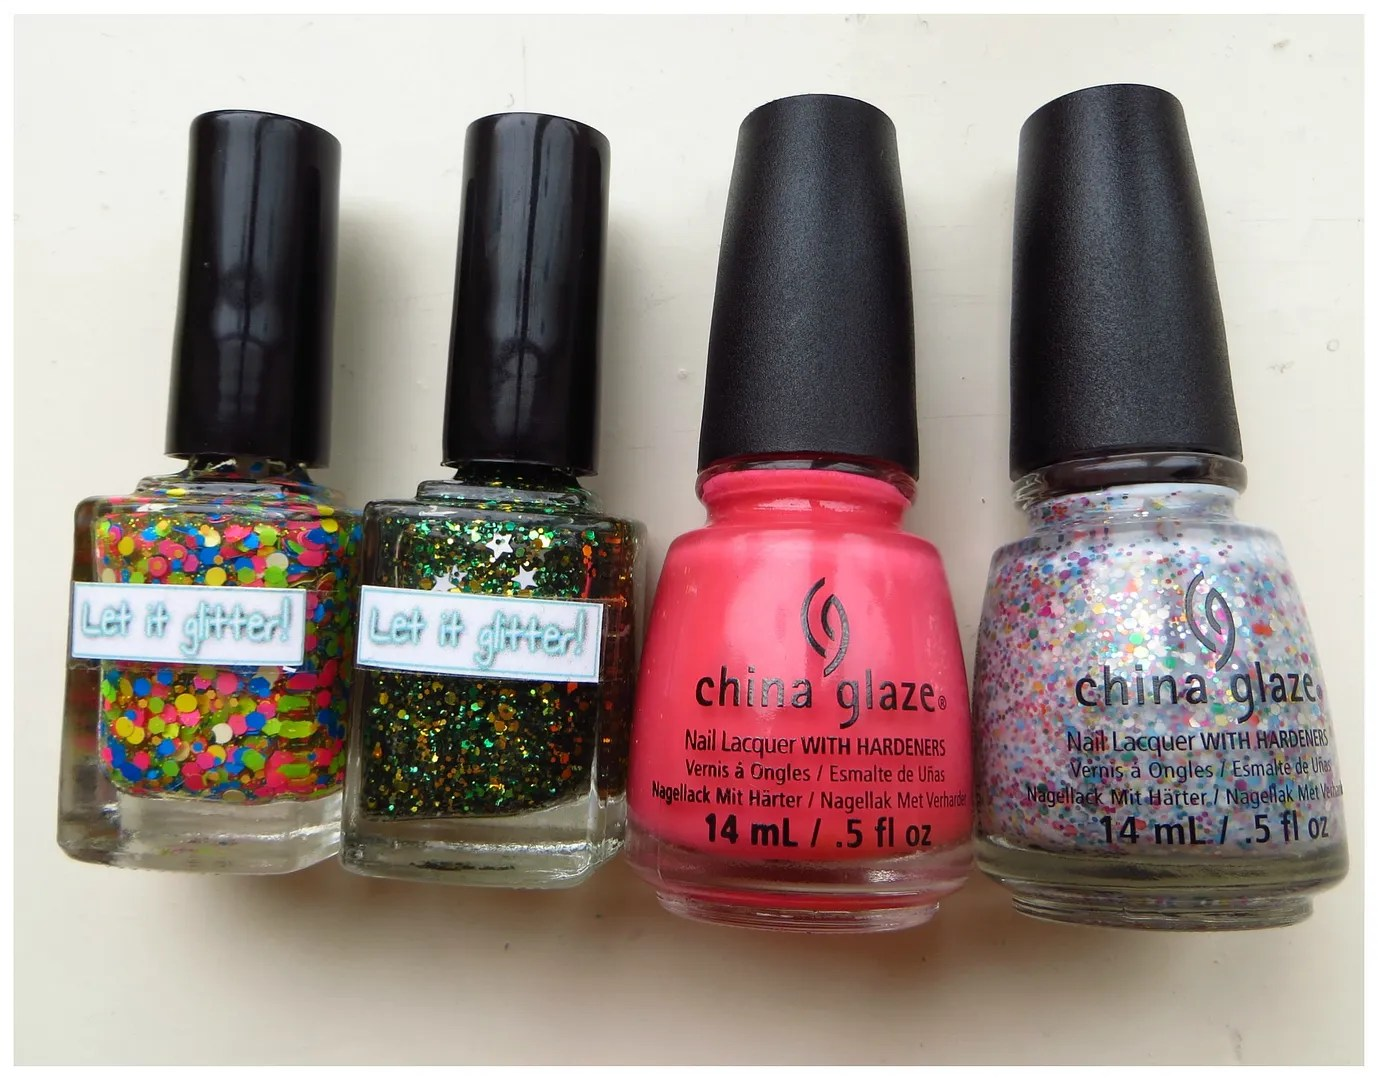 New in: China Glaze & Let it glitter nail polish – Floating in dreams